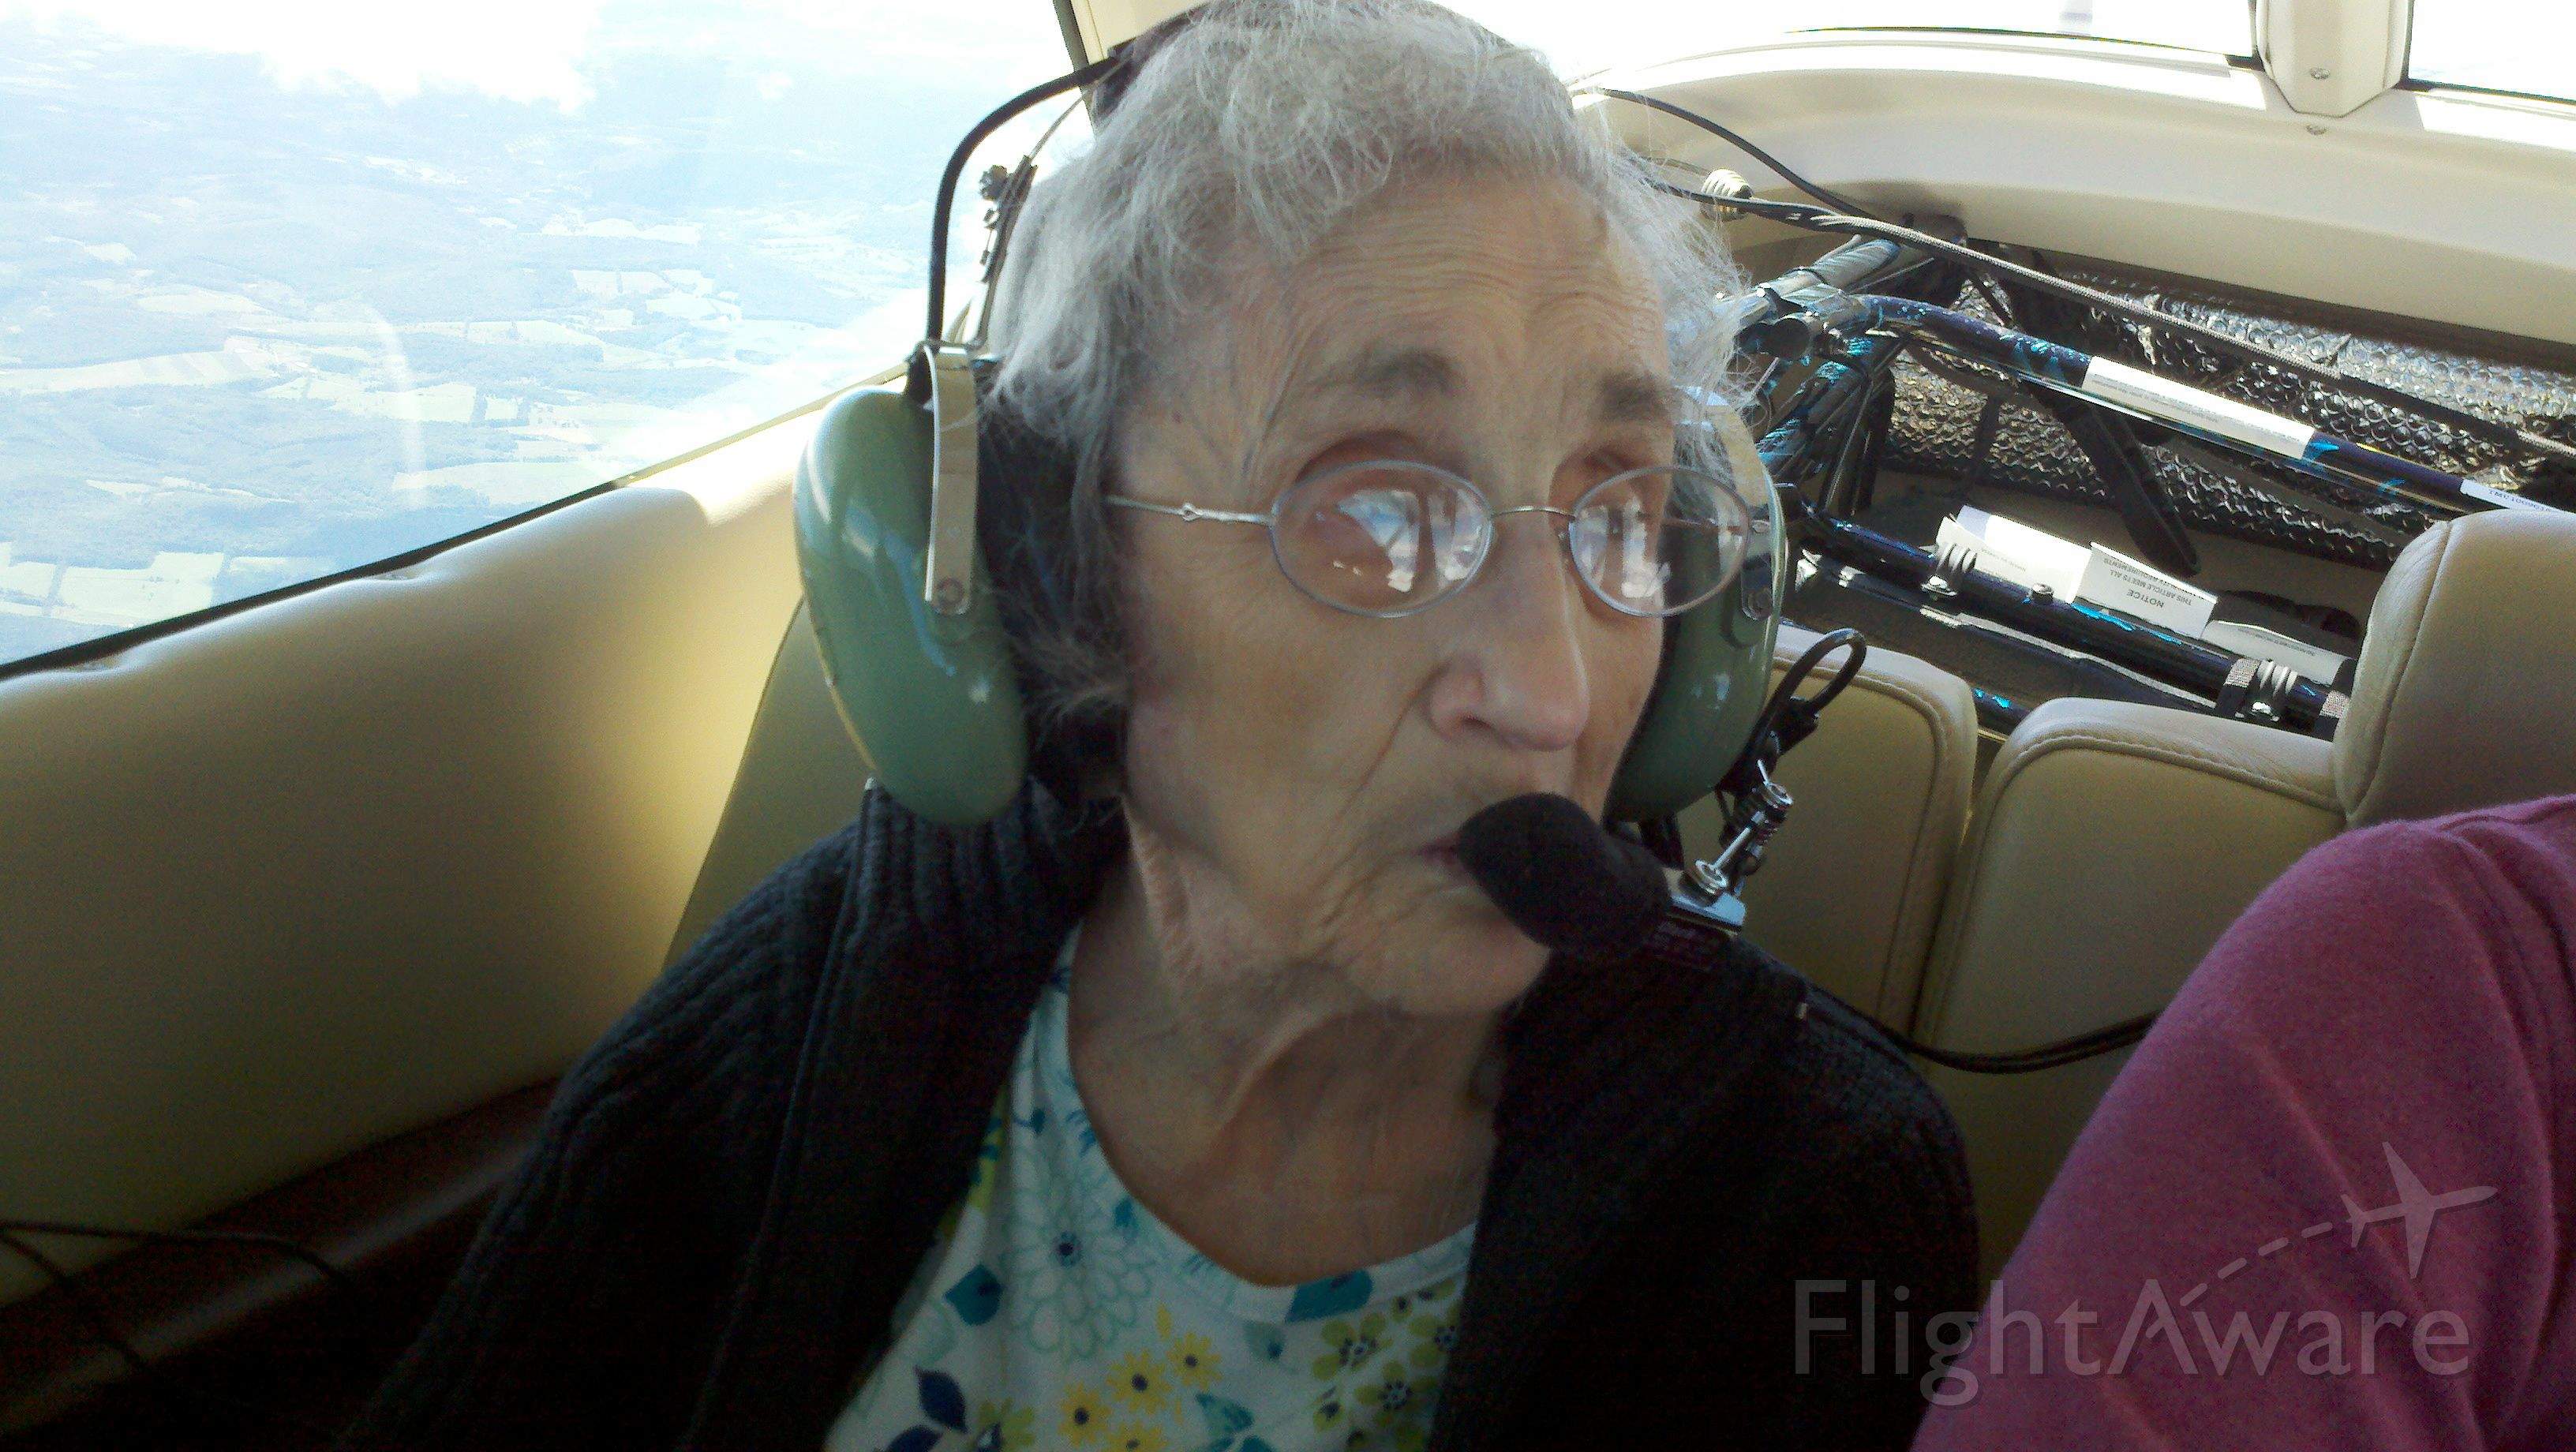 Cessna Cutlass RG (NGF30B) - 94 year old Angel Flight passenger Eleanor on route from Cortland, NY to Portland, ME. A delightful young lady!